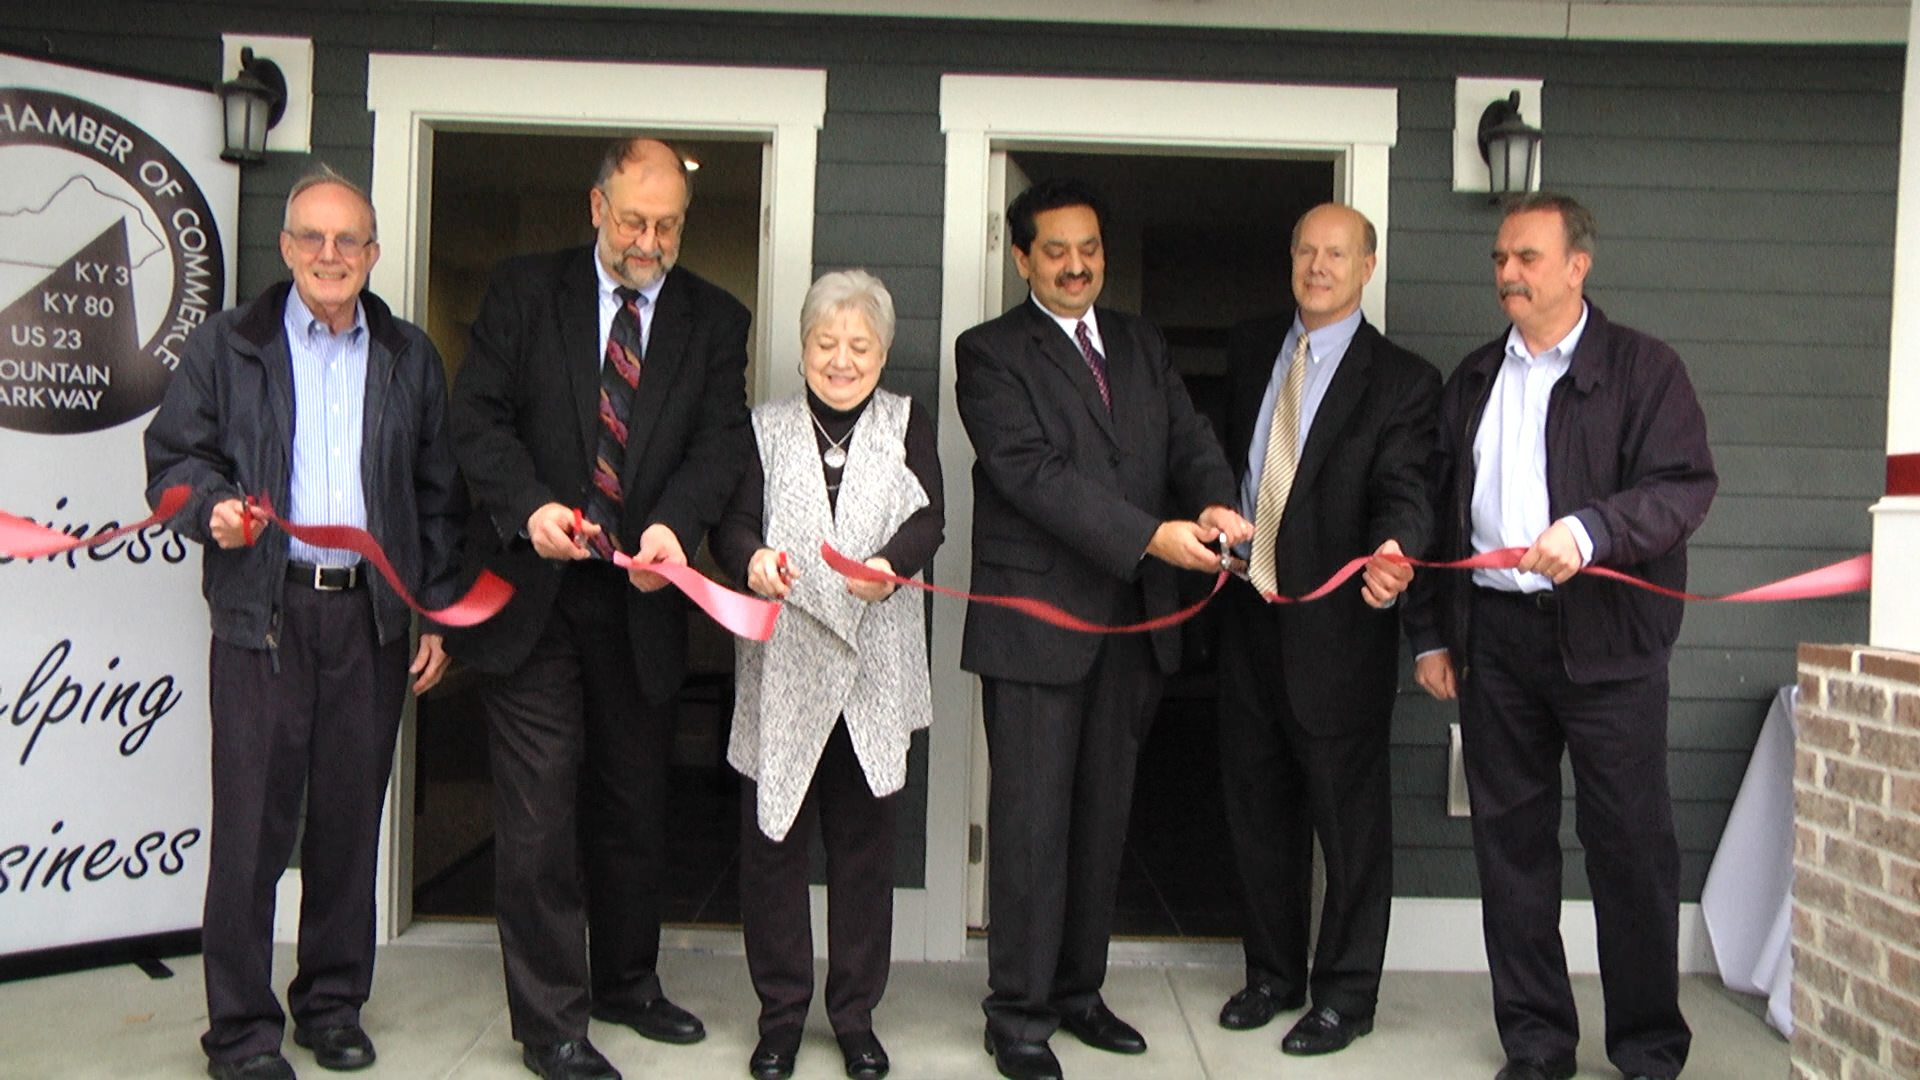 Agency cuts ribbon on low-income/transitional housing facility